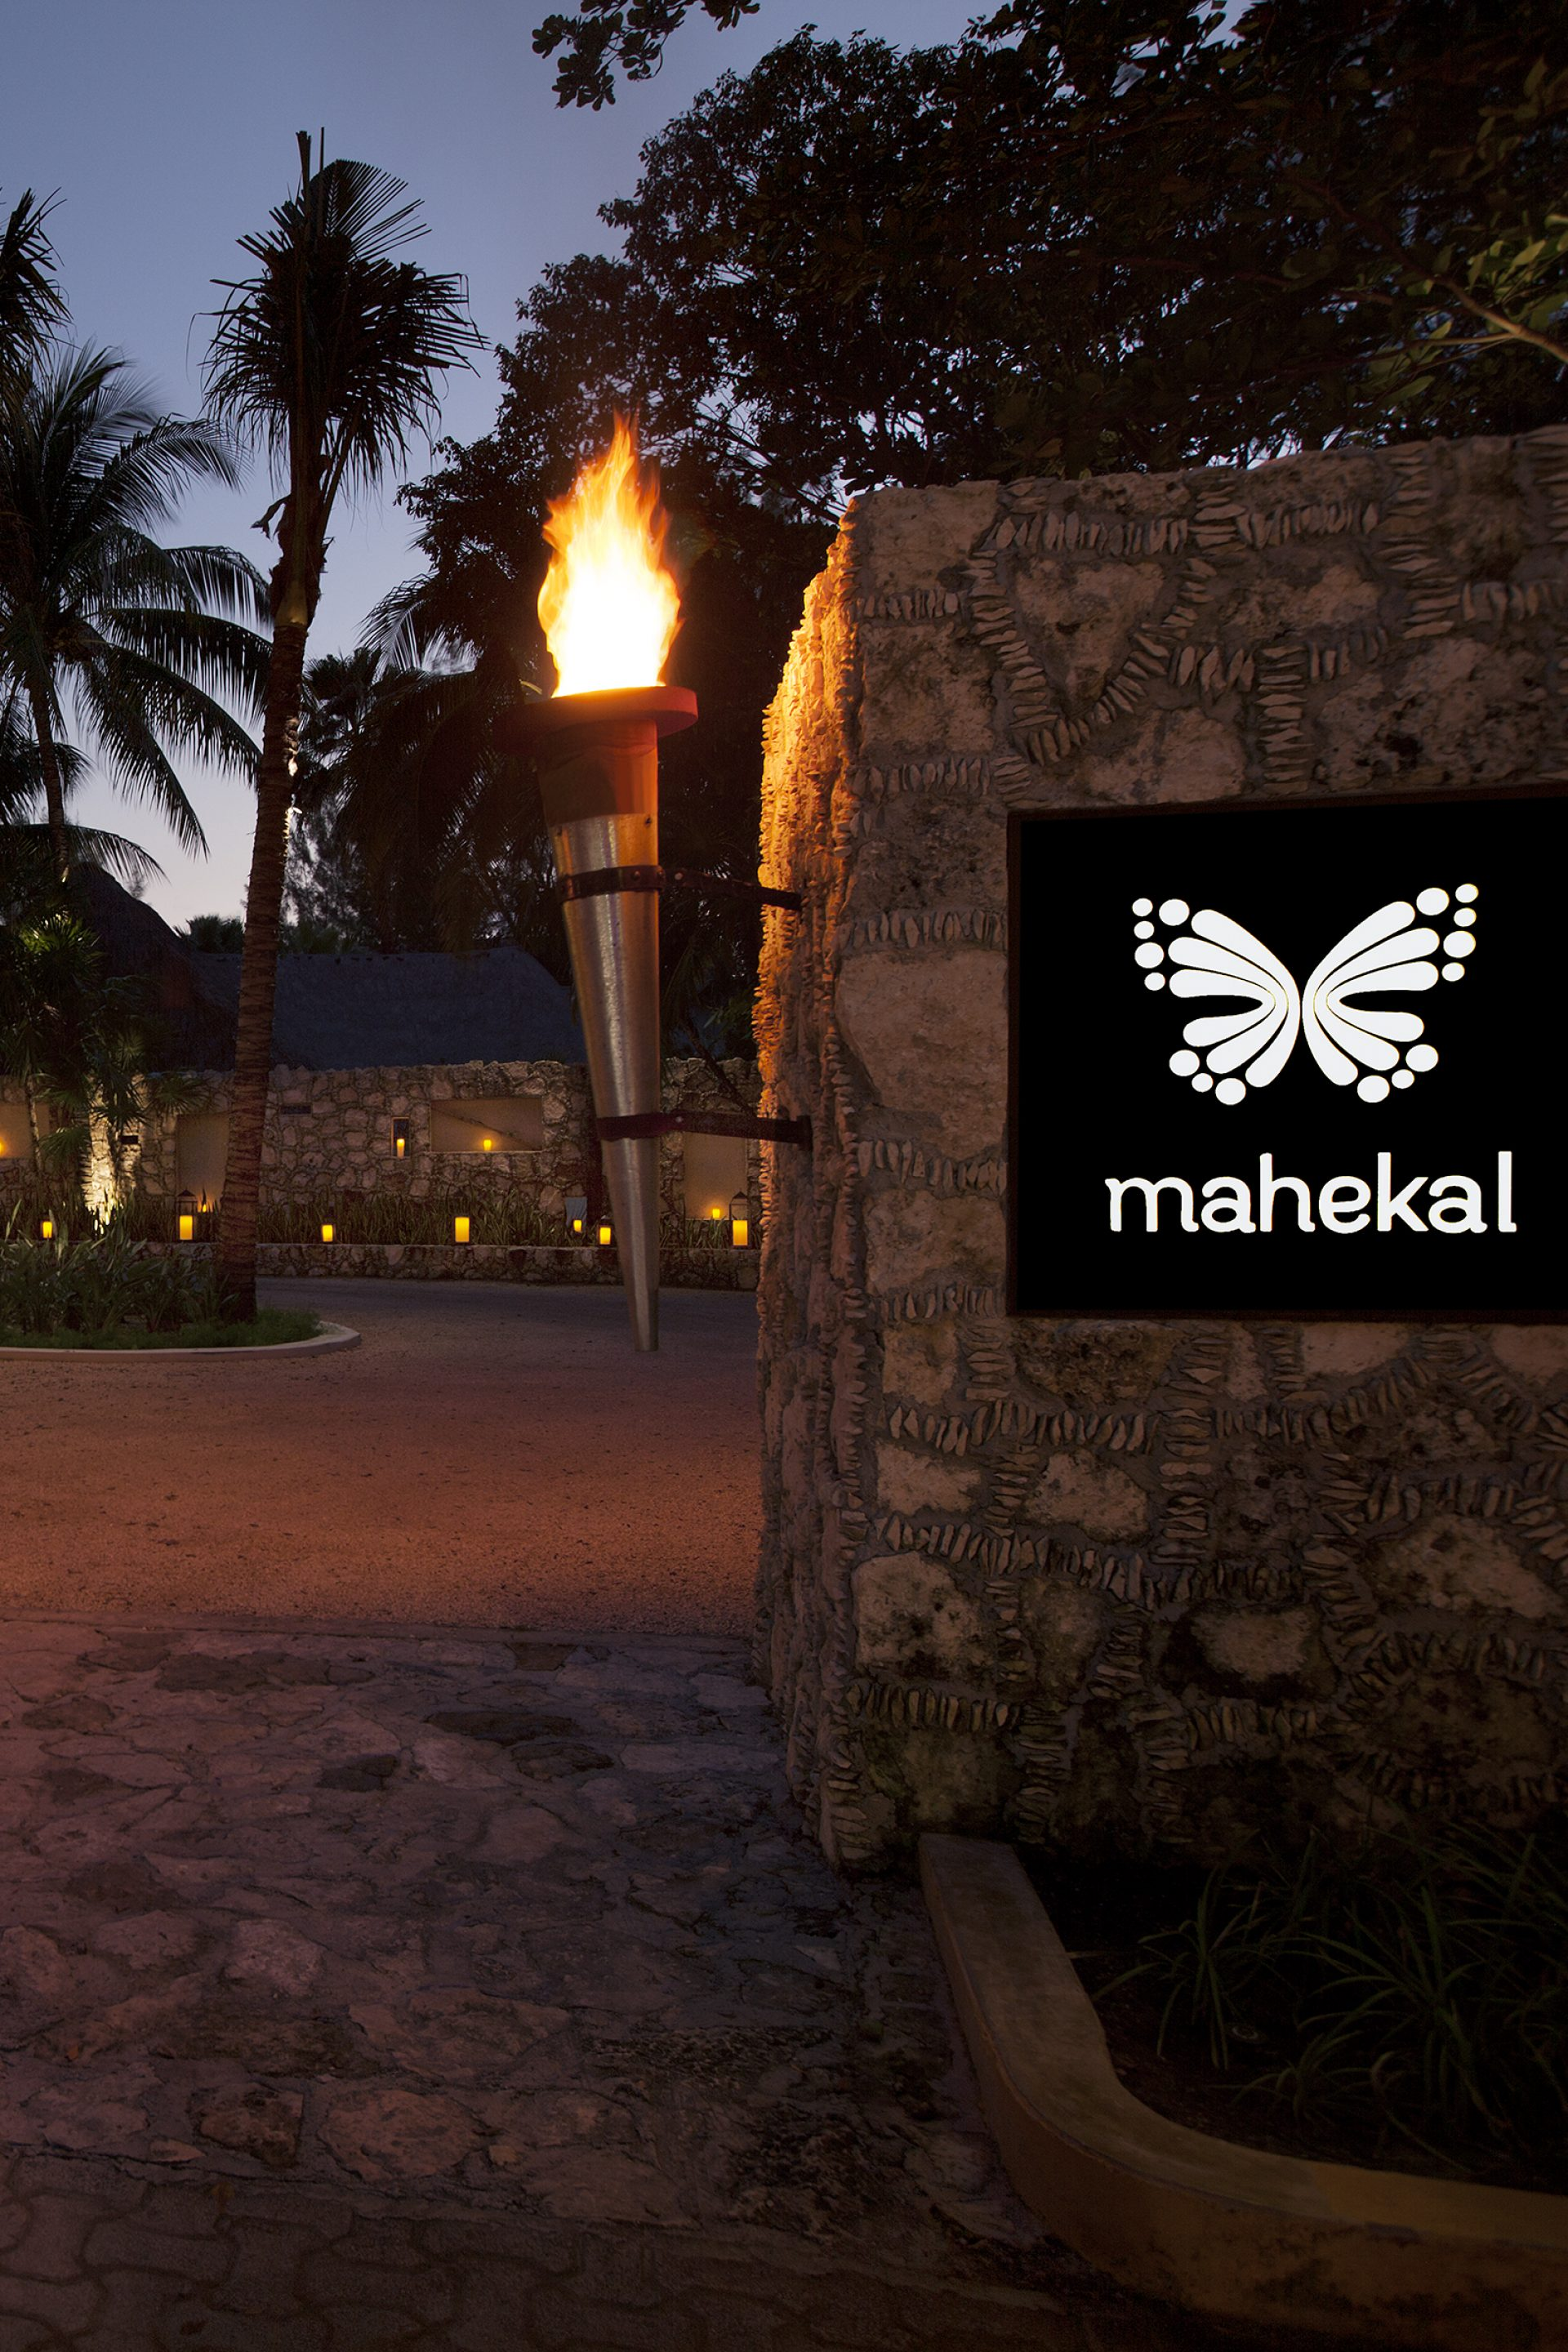 The Magic Butterfly is the entrance to Mahekal Beach Resort